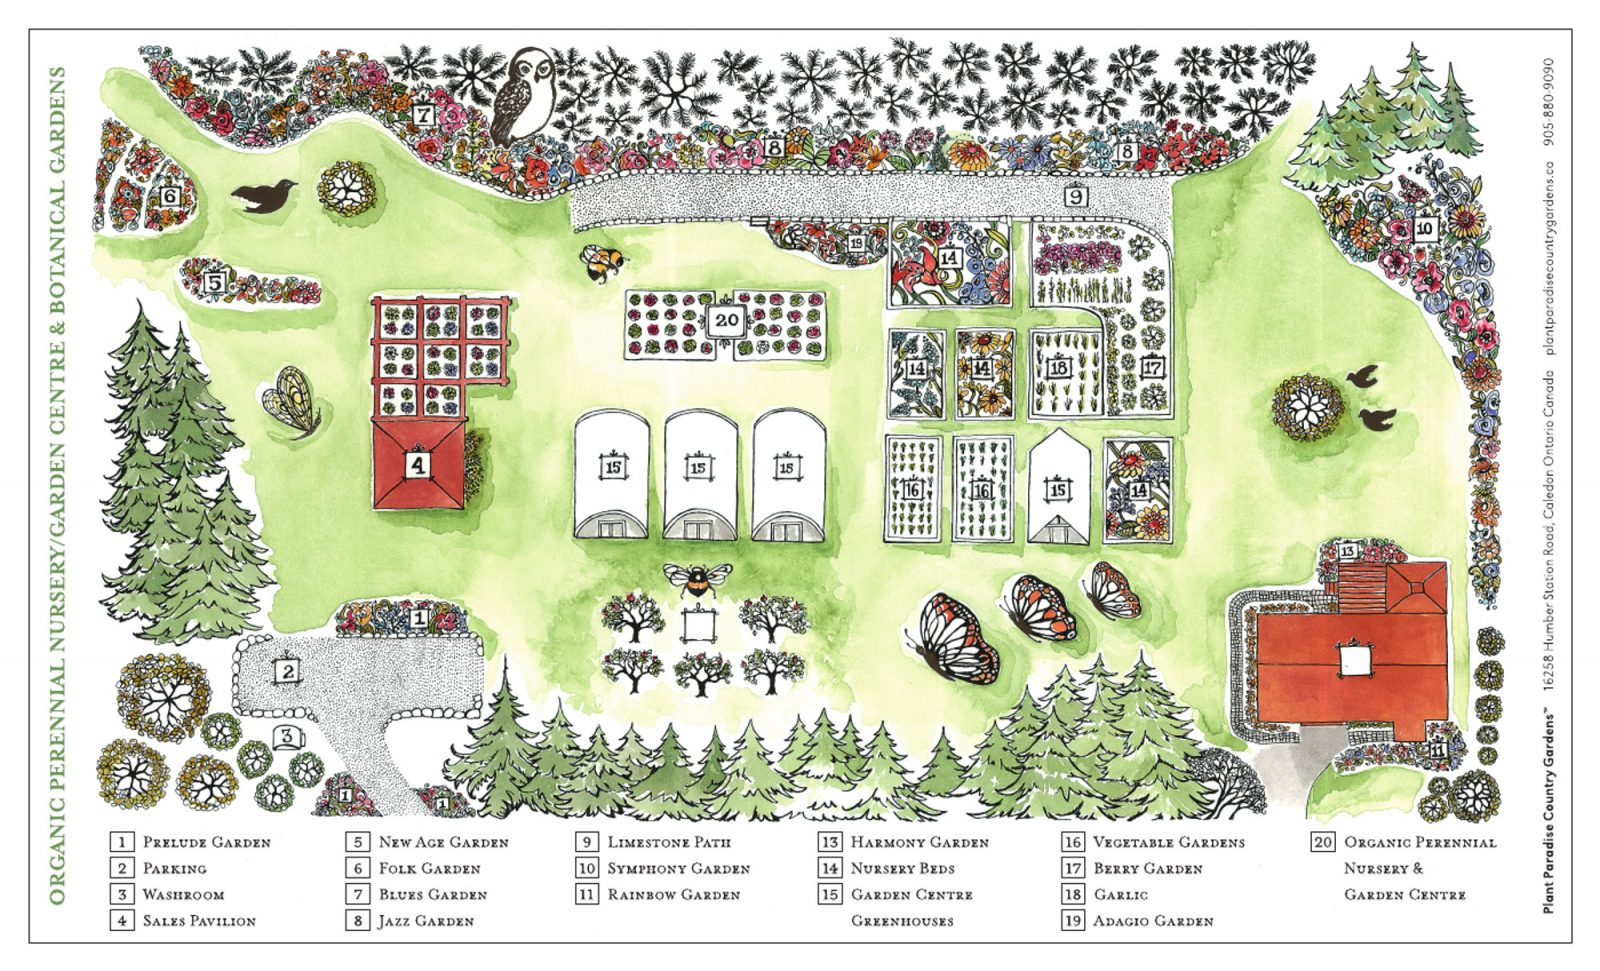 Map of Botanical Gardens at Plant Paradise Country Gardens